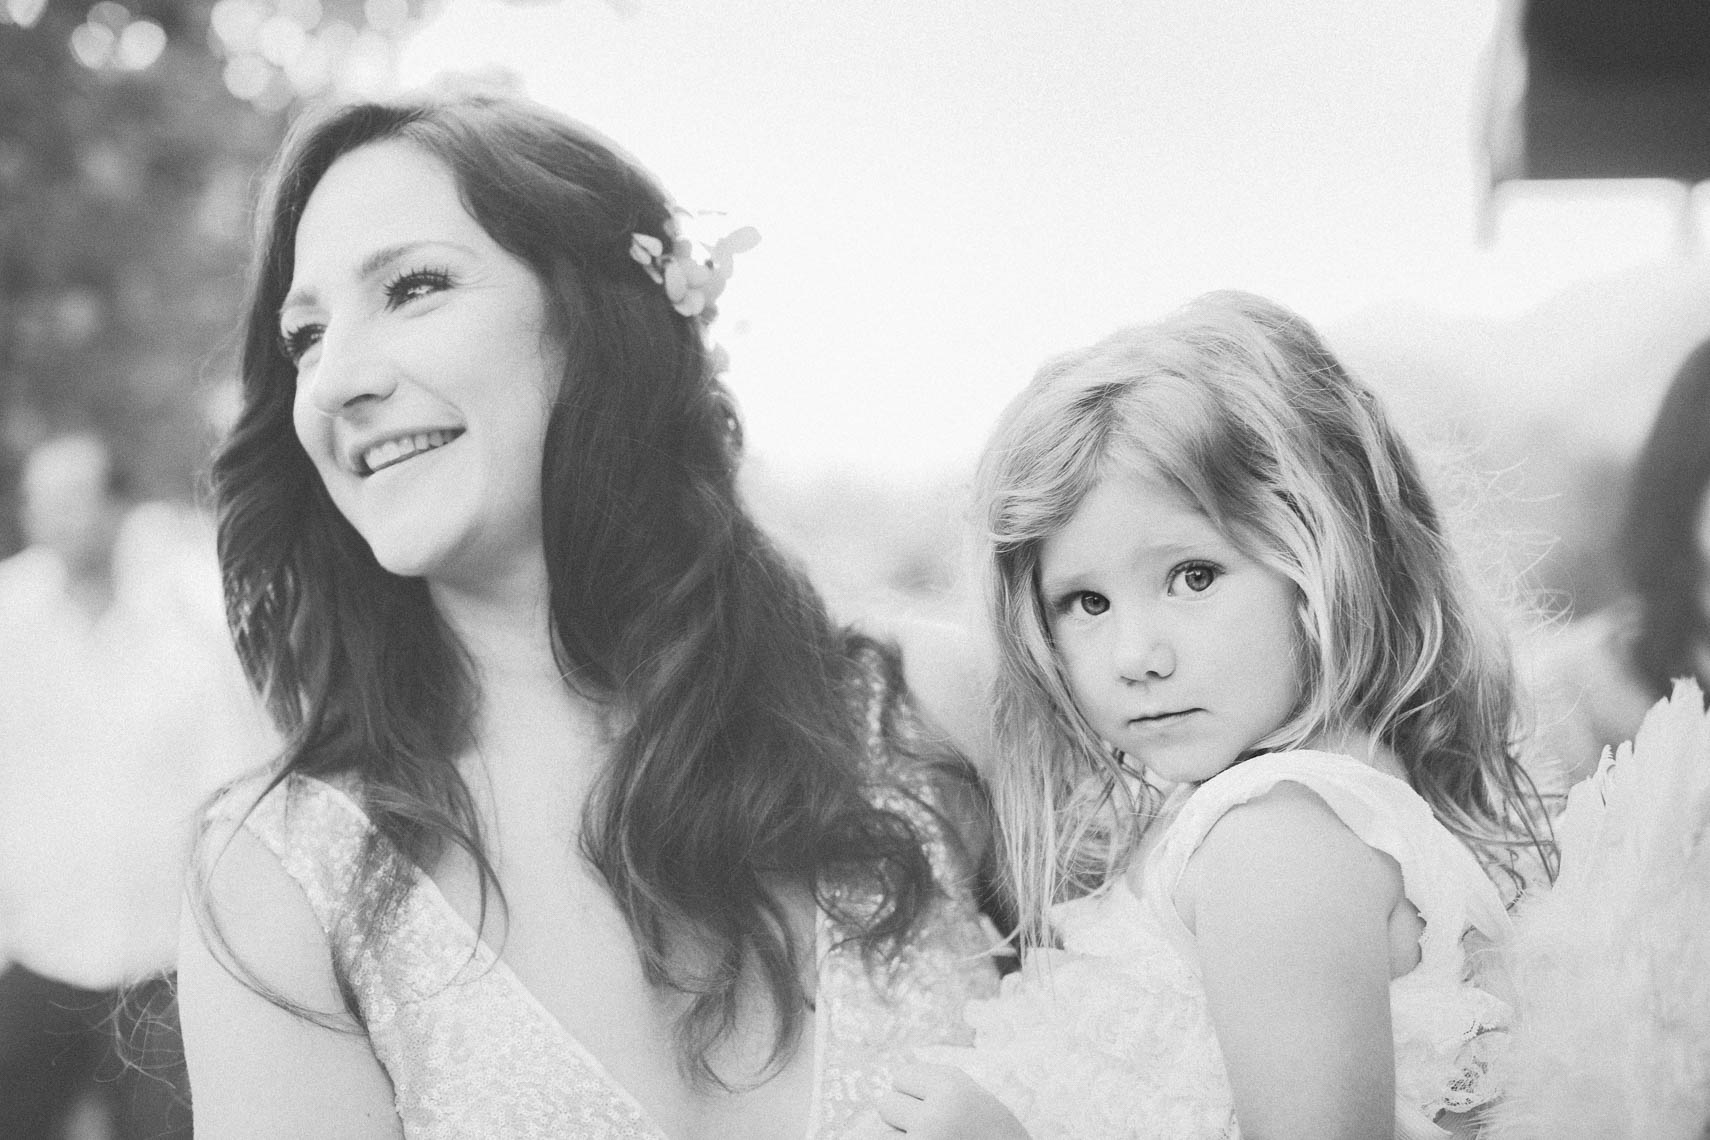 Bride with child in black and white portrait at wedding reception